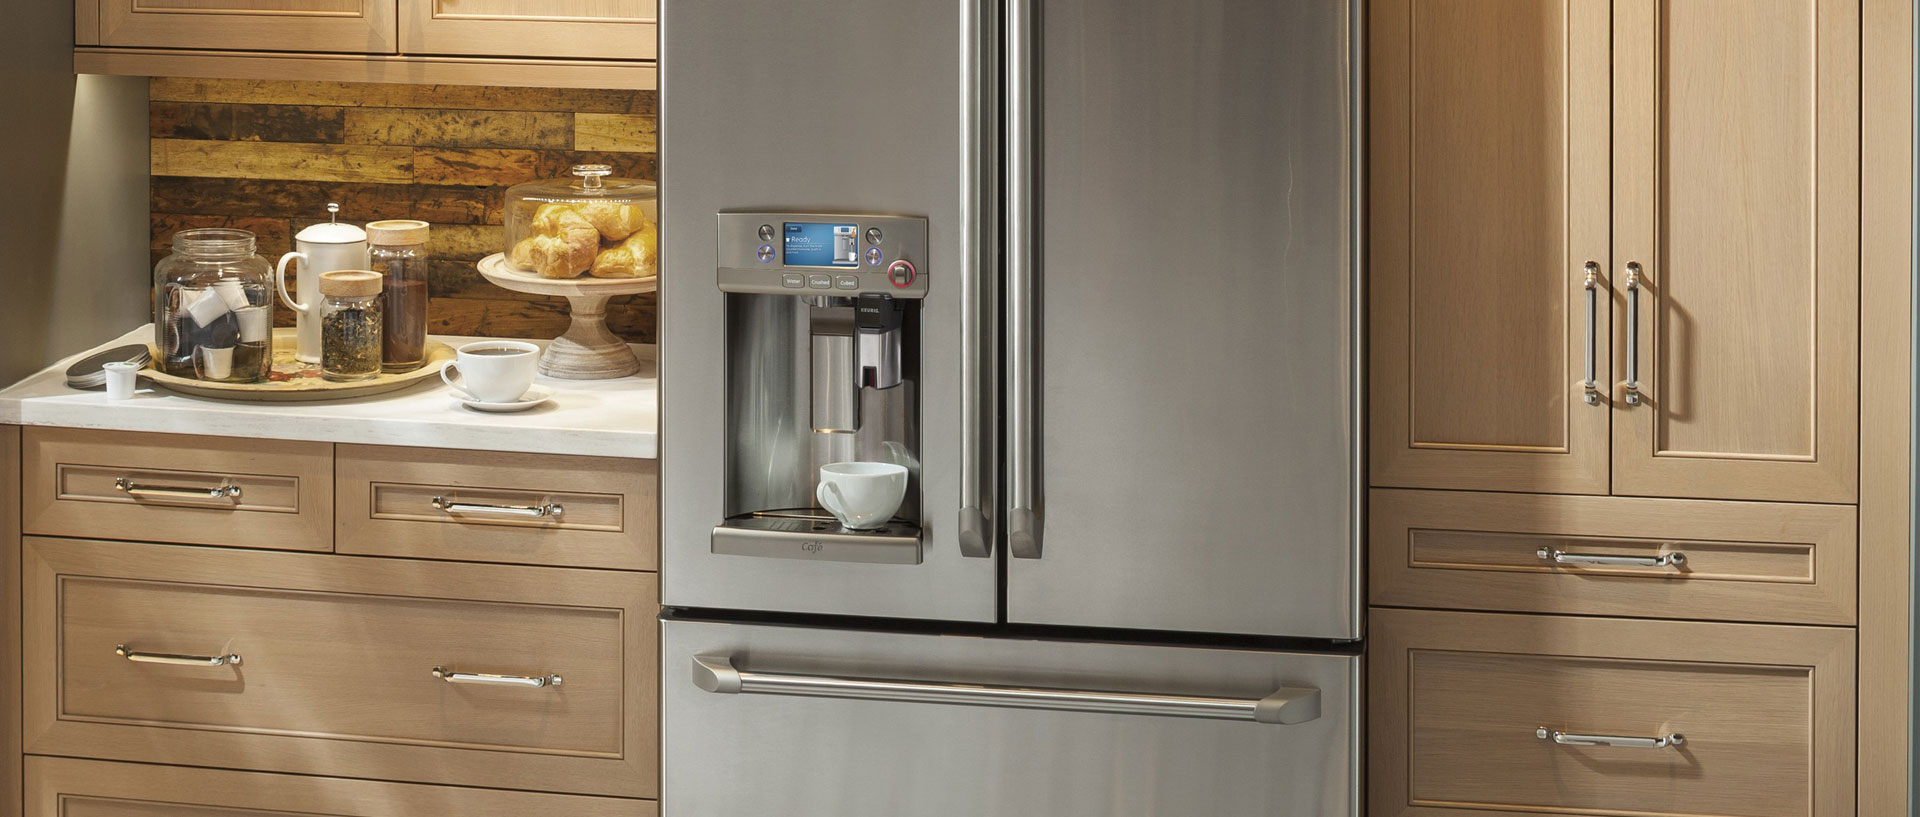 Mattresses Consumer Reports When a Counter Depth Refrigerator is the Best Fit - Consumer Reports